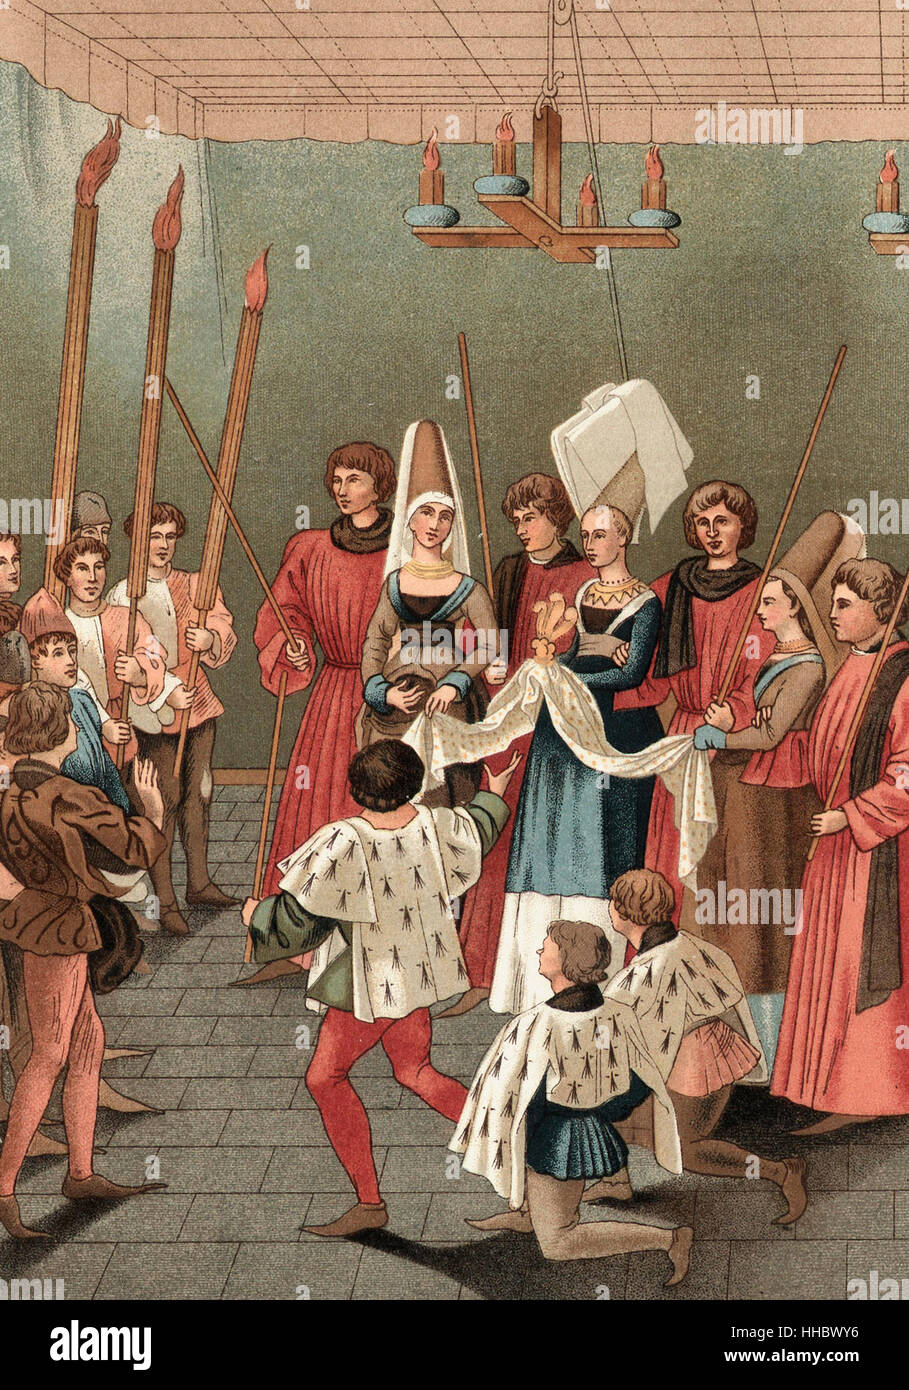 The tournament prize in medieval times - Stock Image